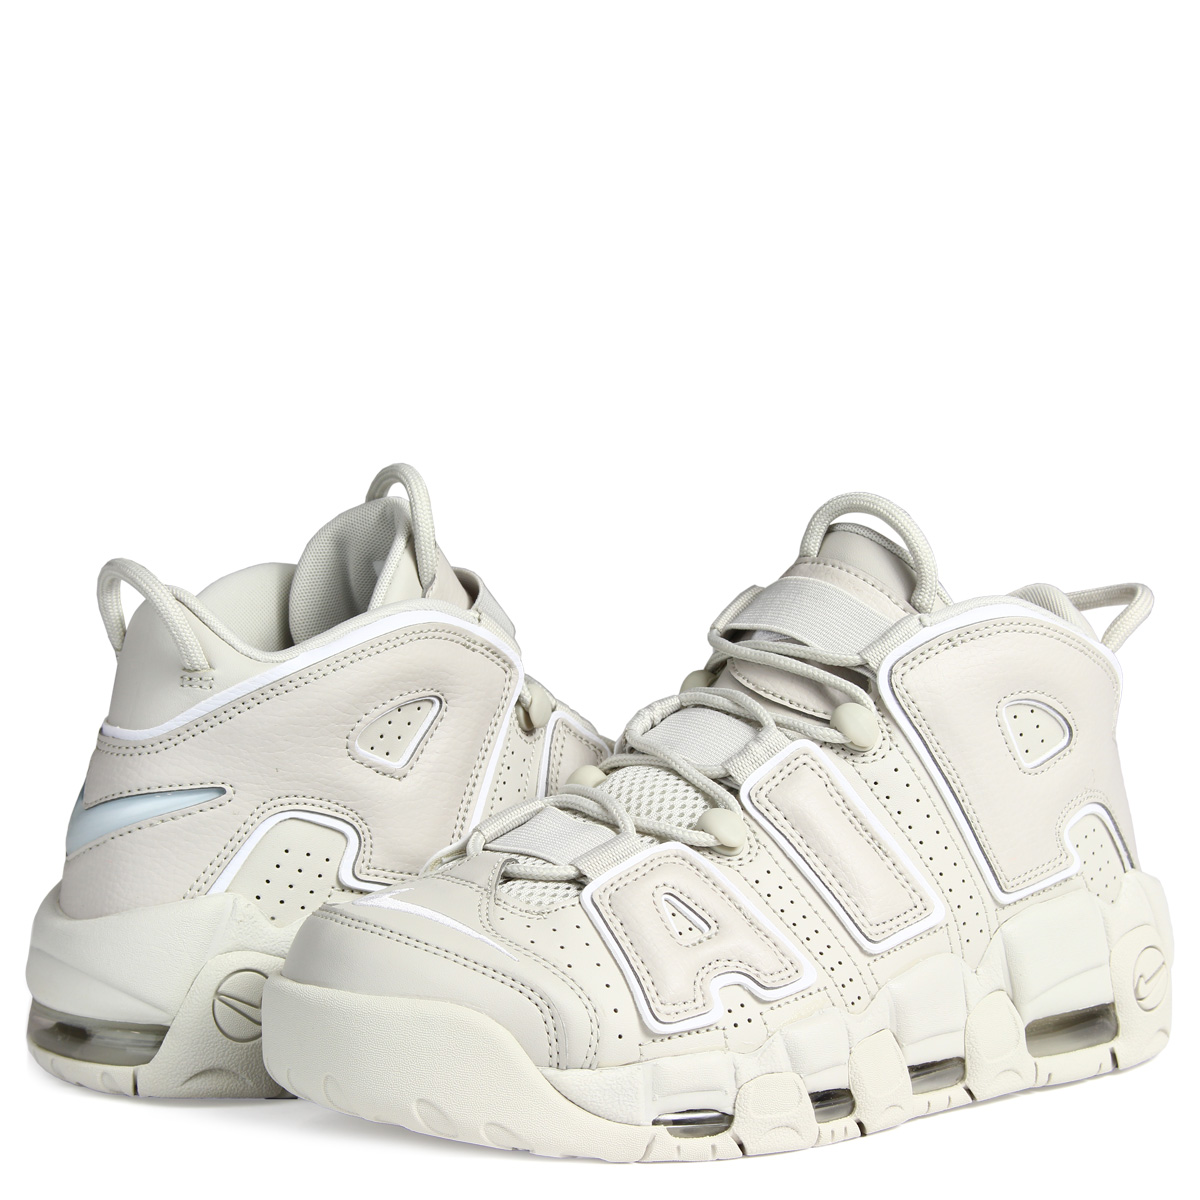 90ca63787e NIKE AIR MORE UPTEMPO 96 Nike air more up tempo sneakers 921,948-001 men's  shoes ...